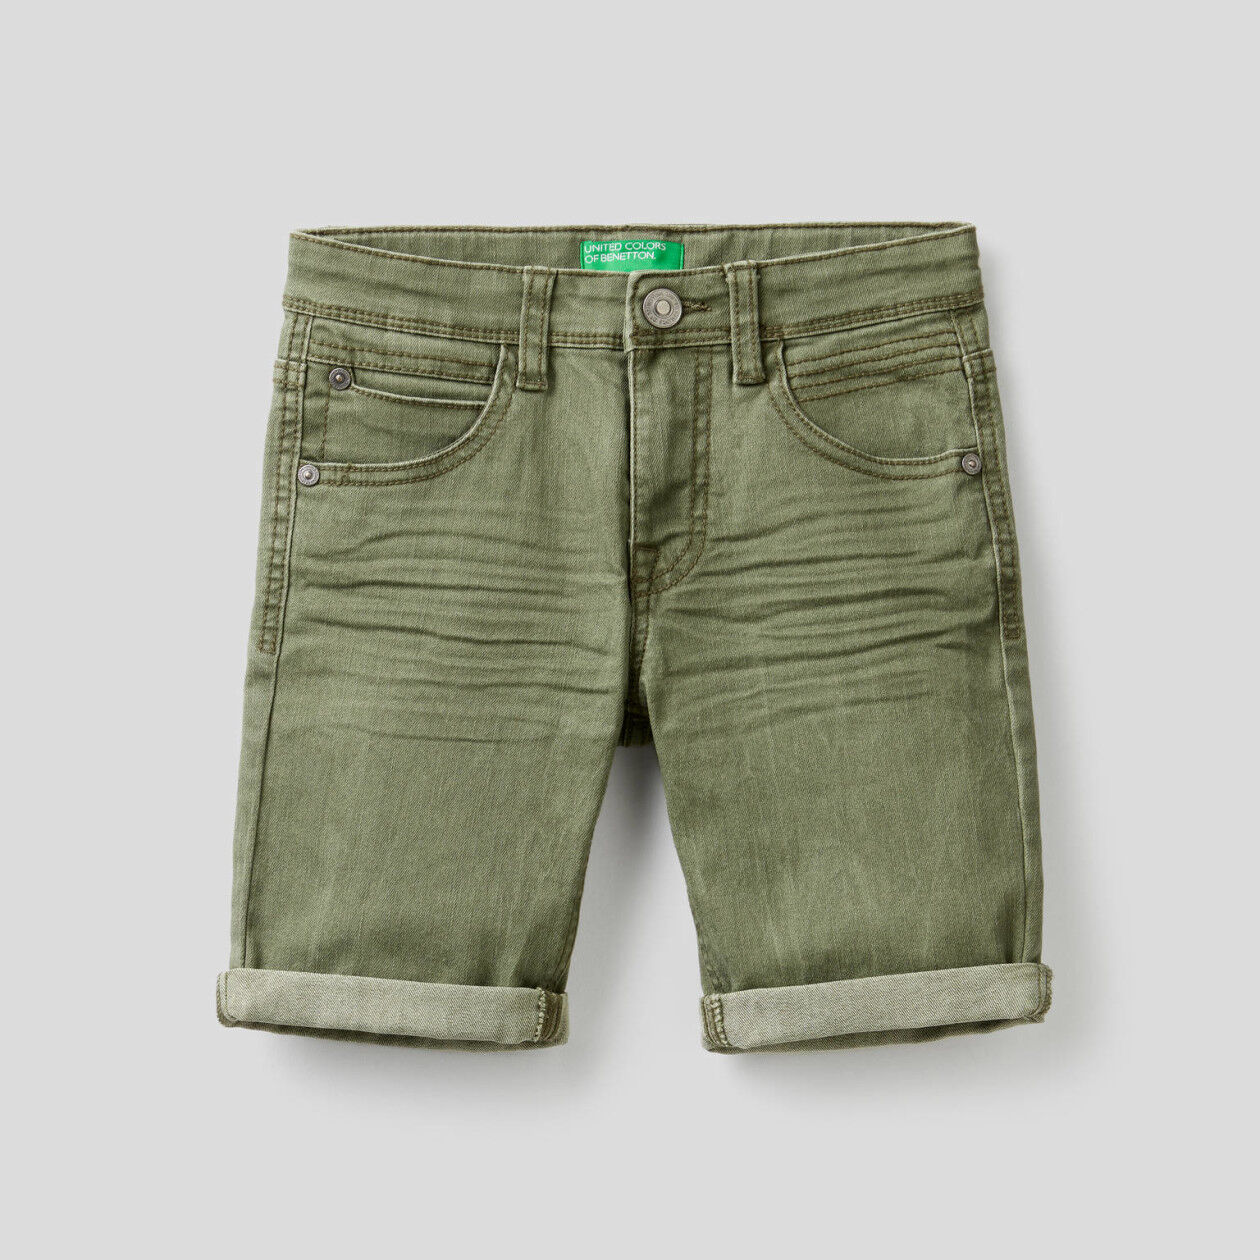 Slim fit bermudas